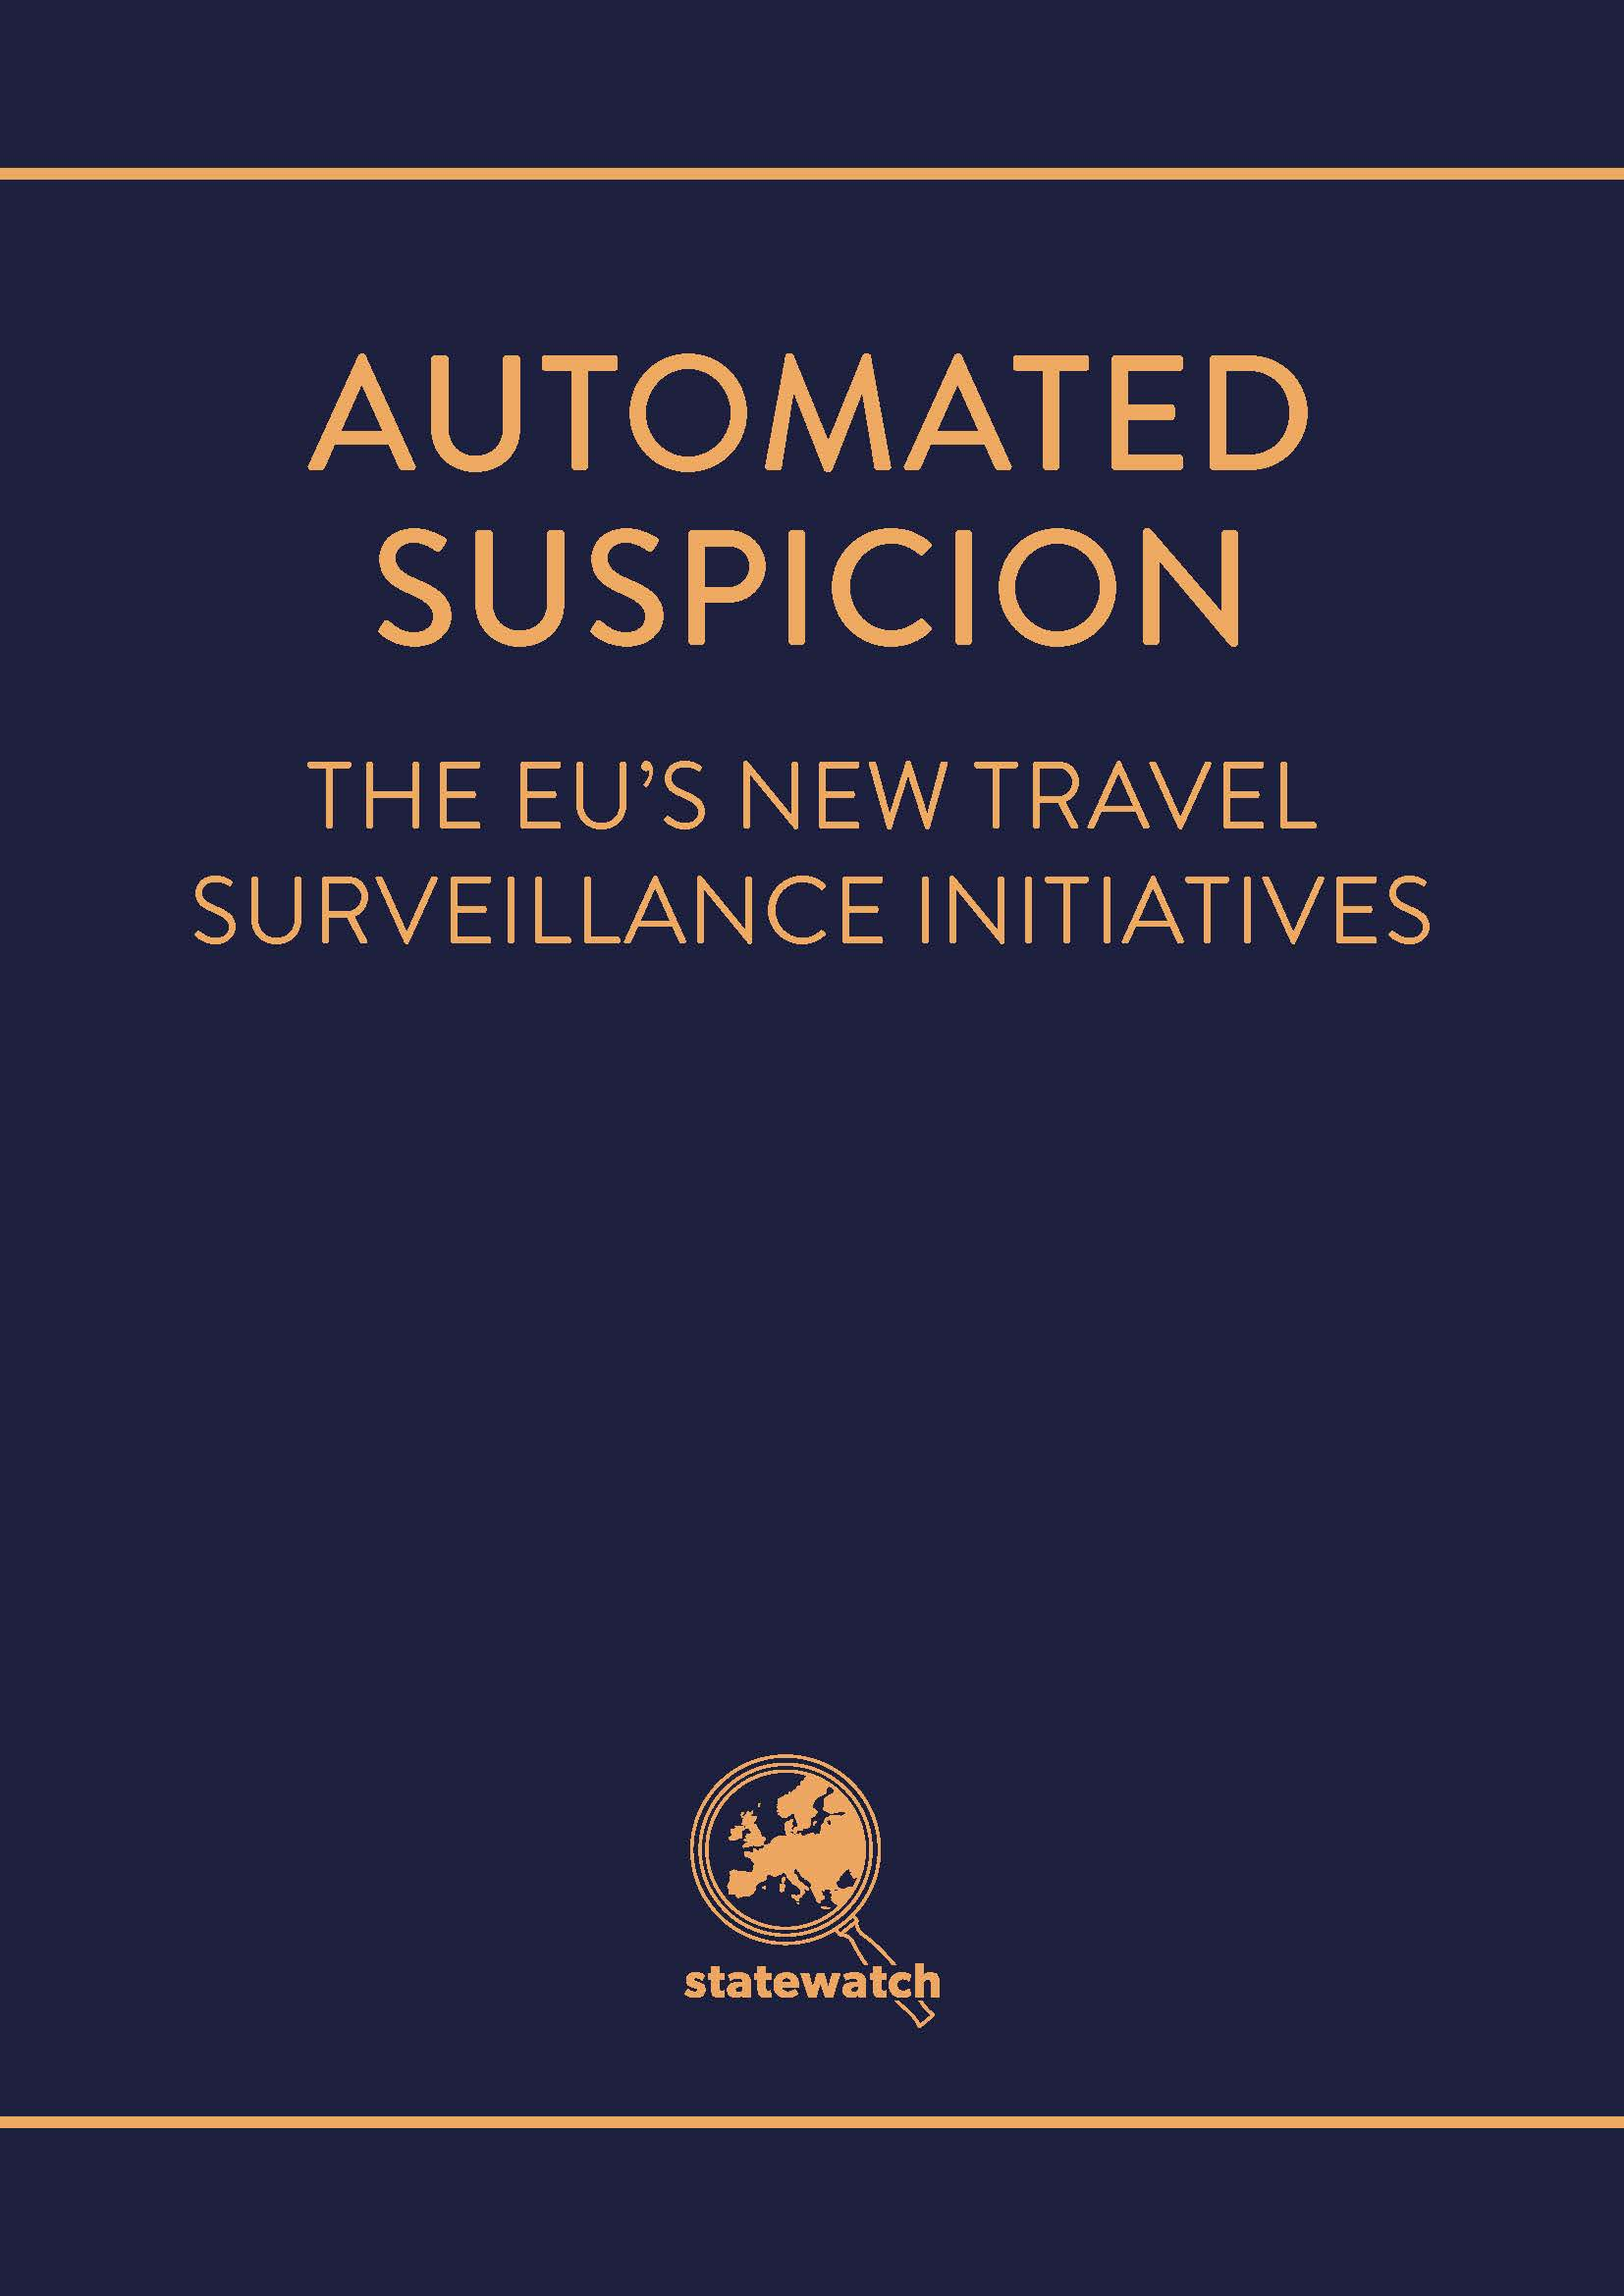 Automated suspicion cover